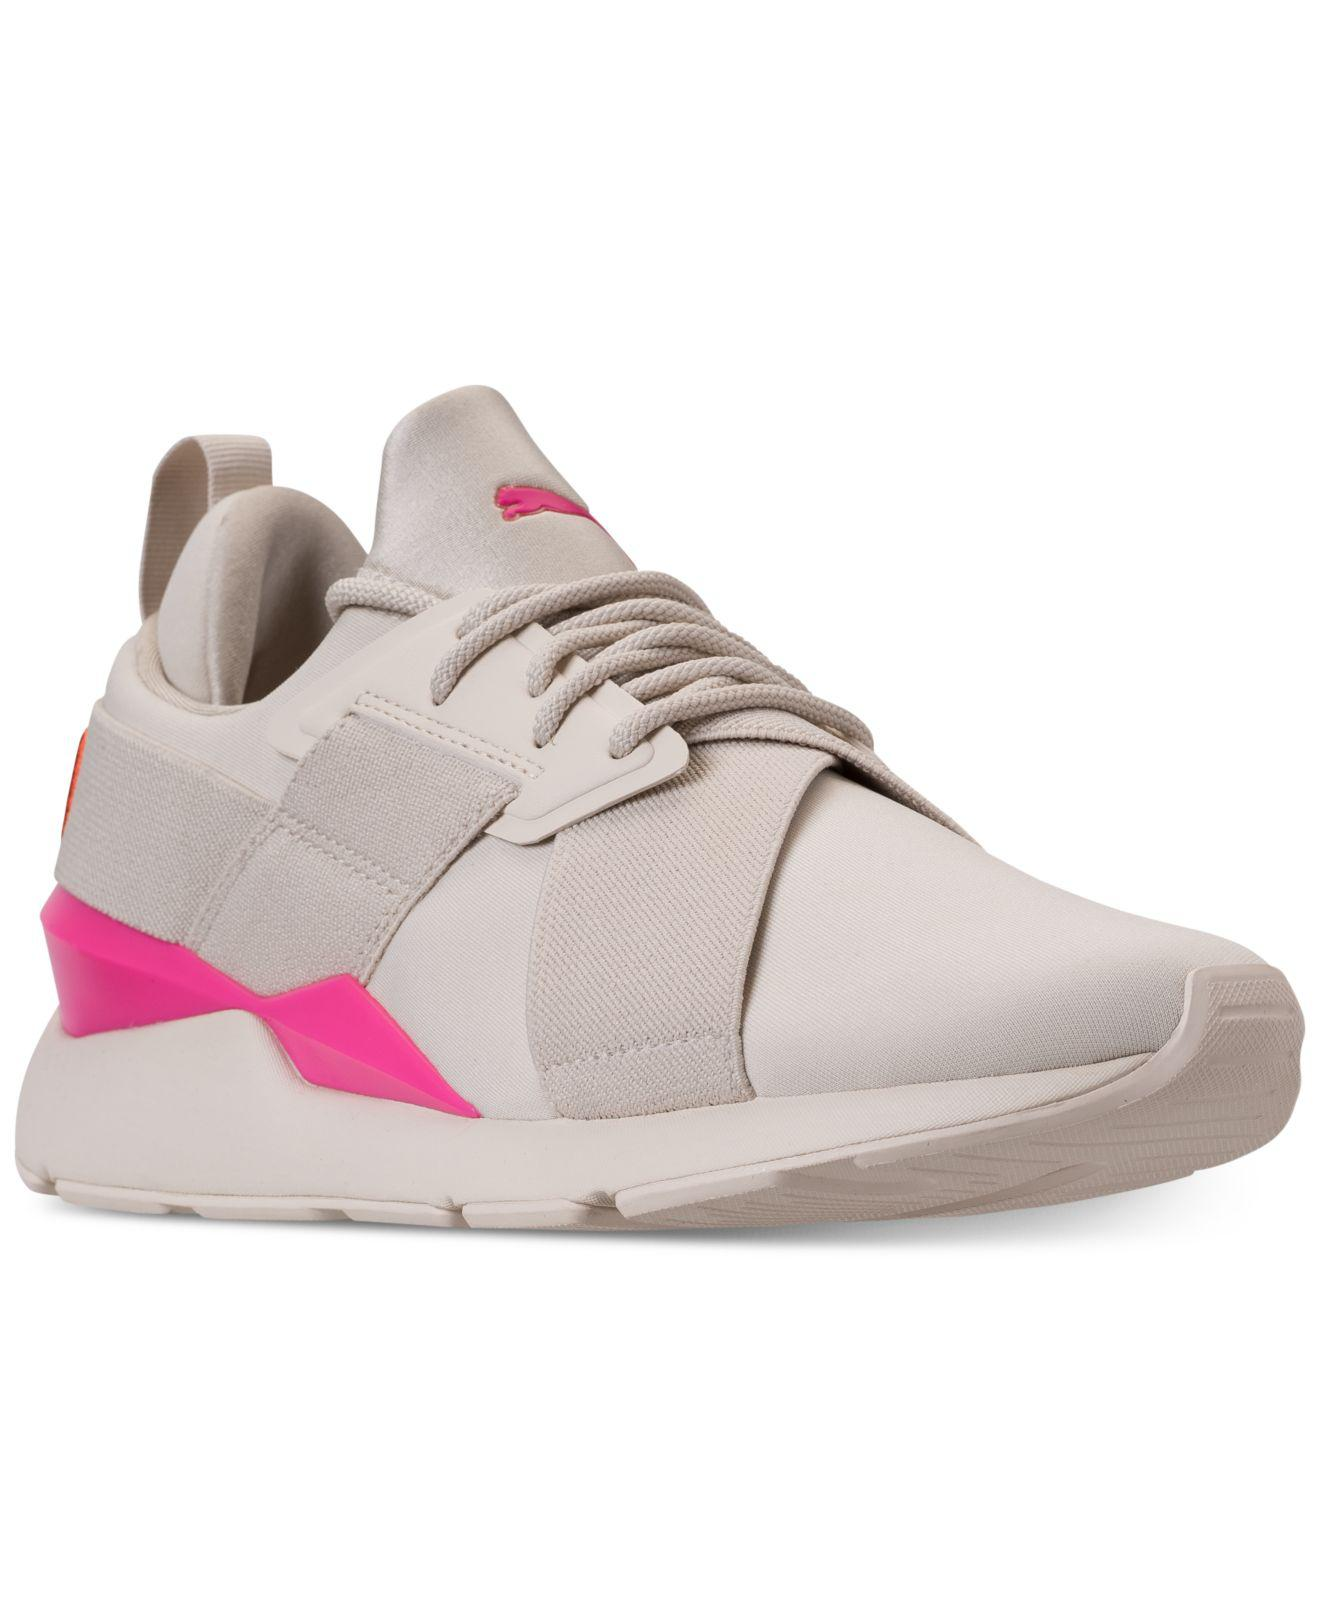 Lyst - PUMA Muse Chase Casual Sneakers From Finish Line in Pink ebf79af89